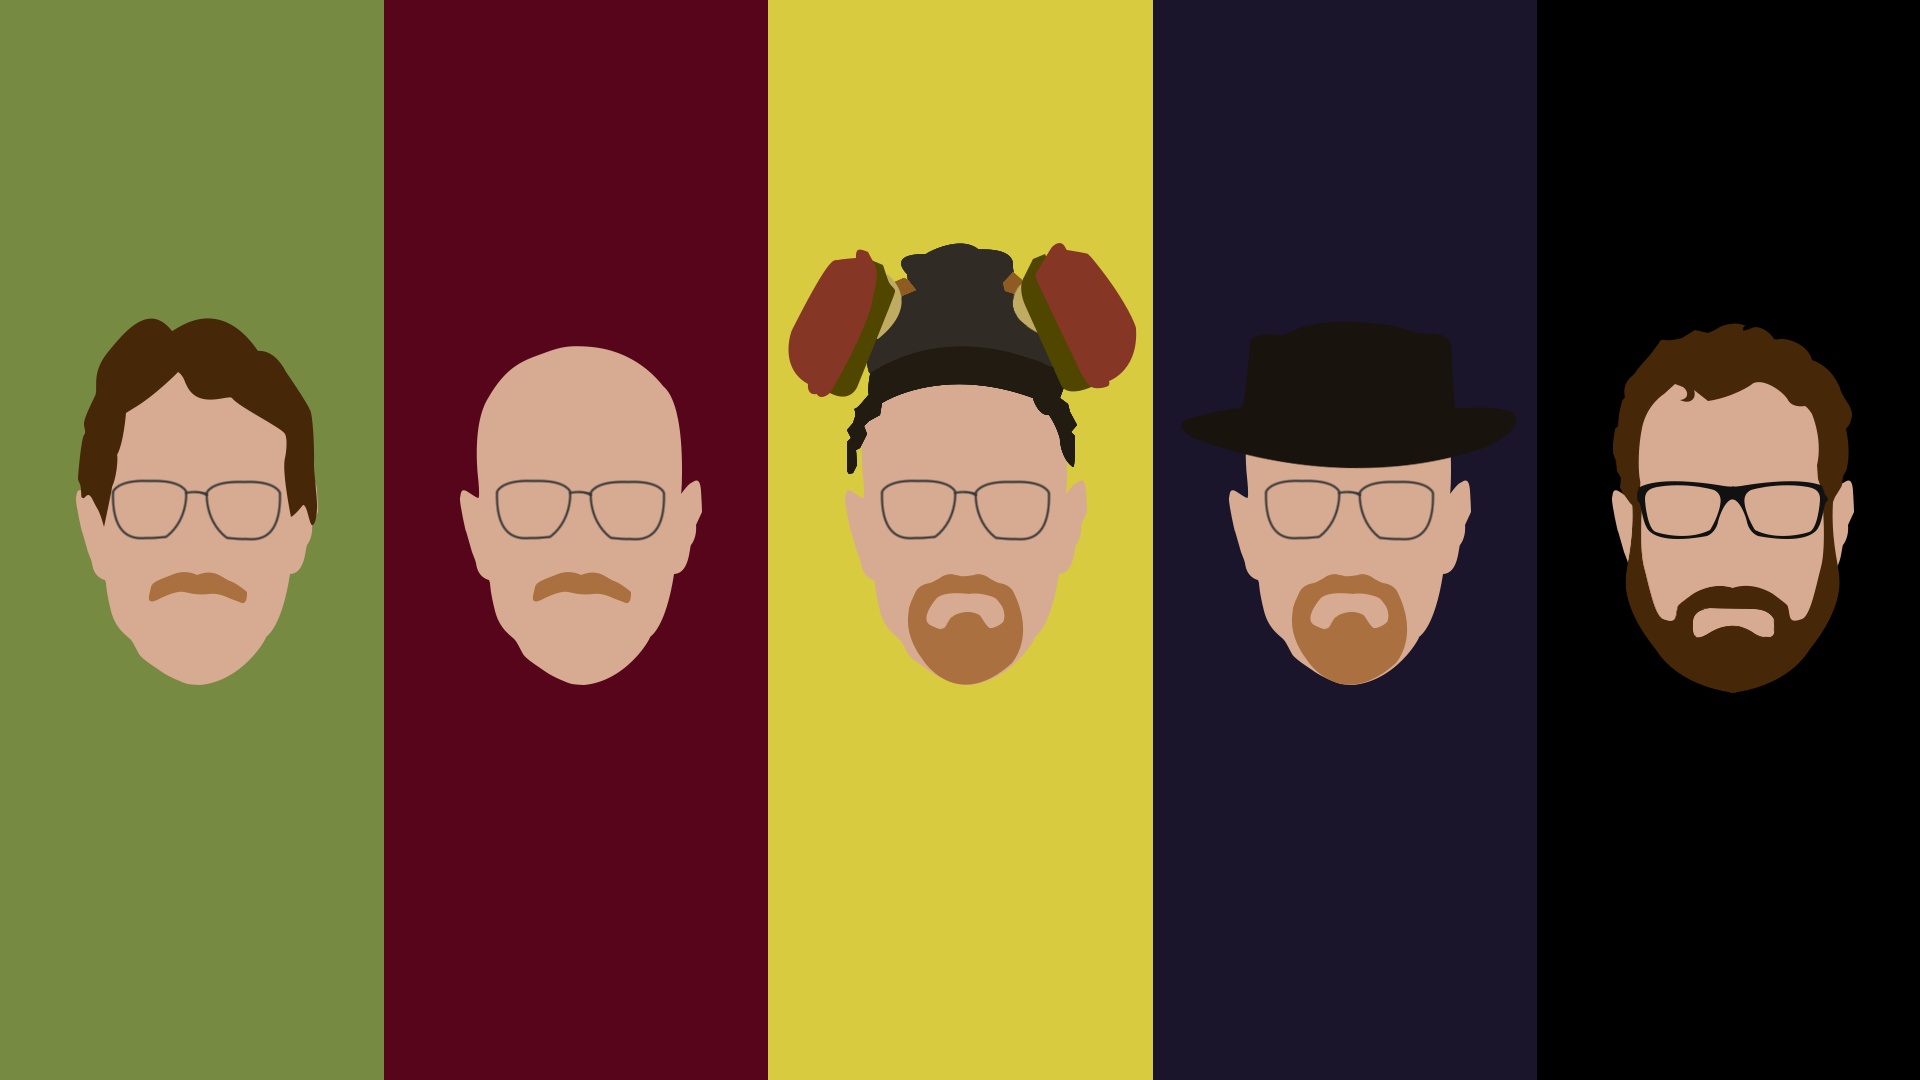 I made this wallpaper. Beard clipart minimalist